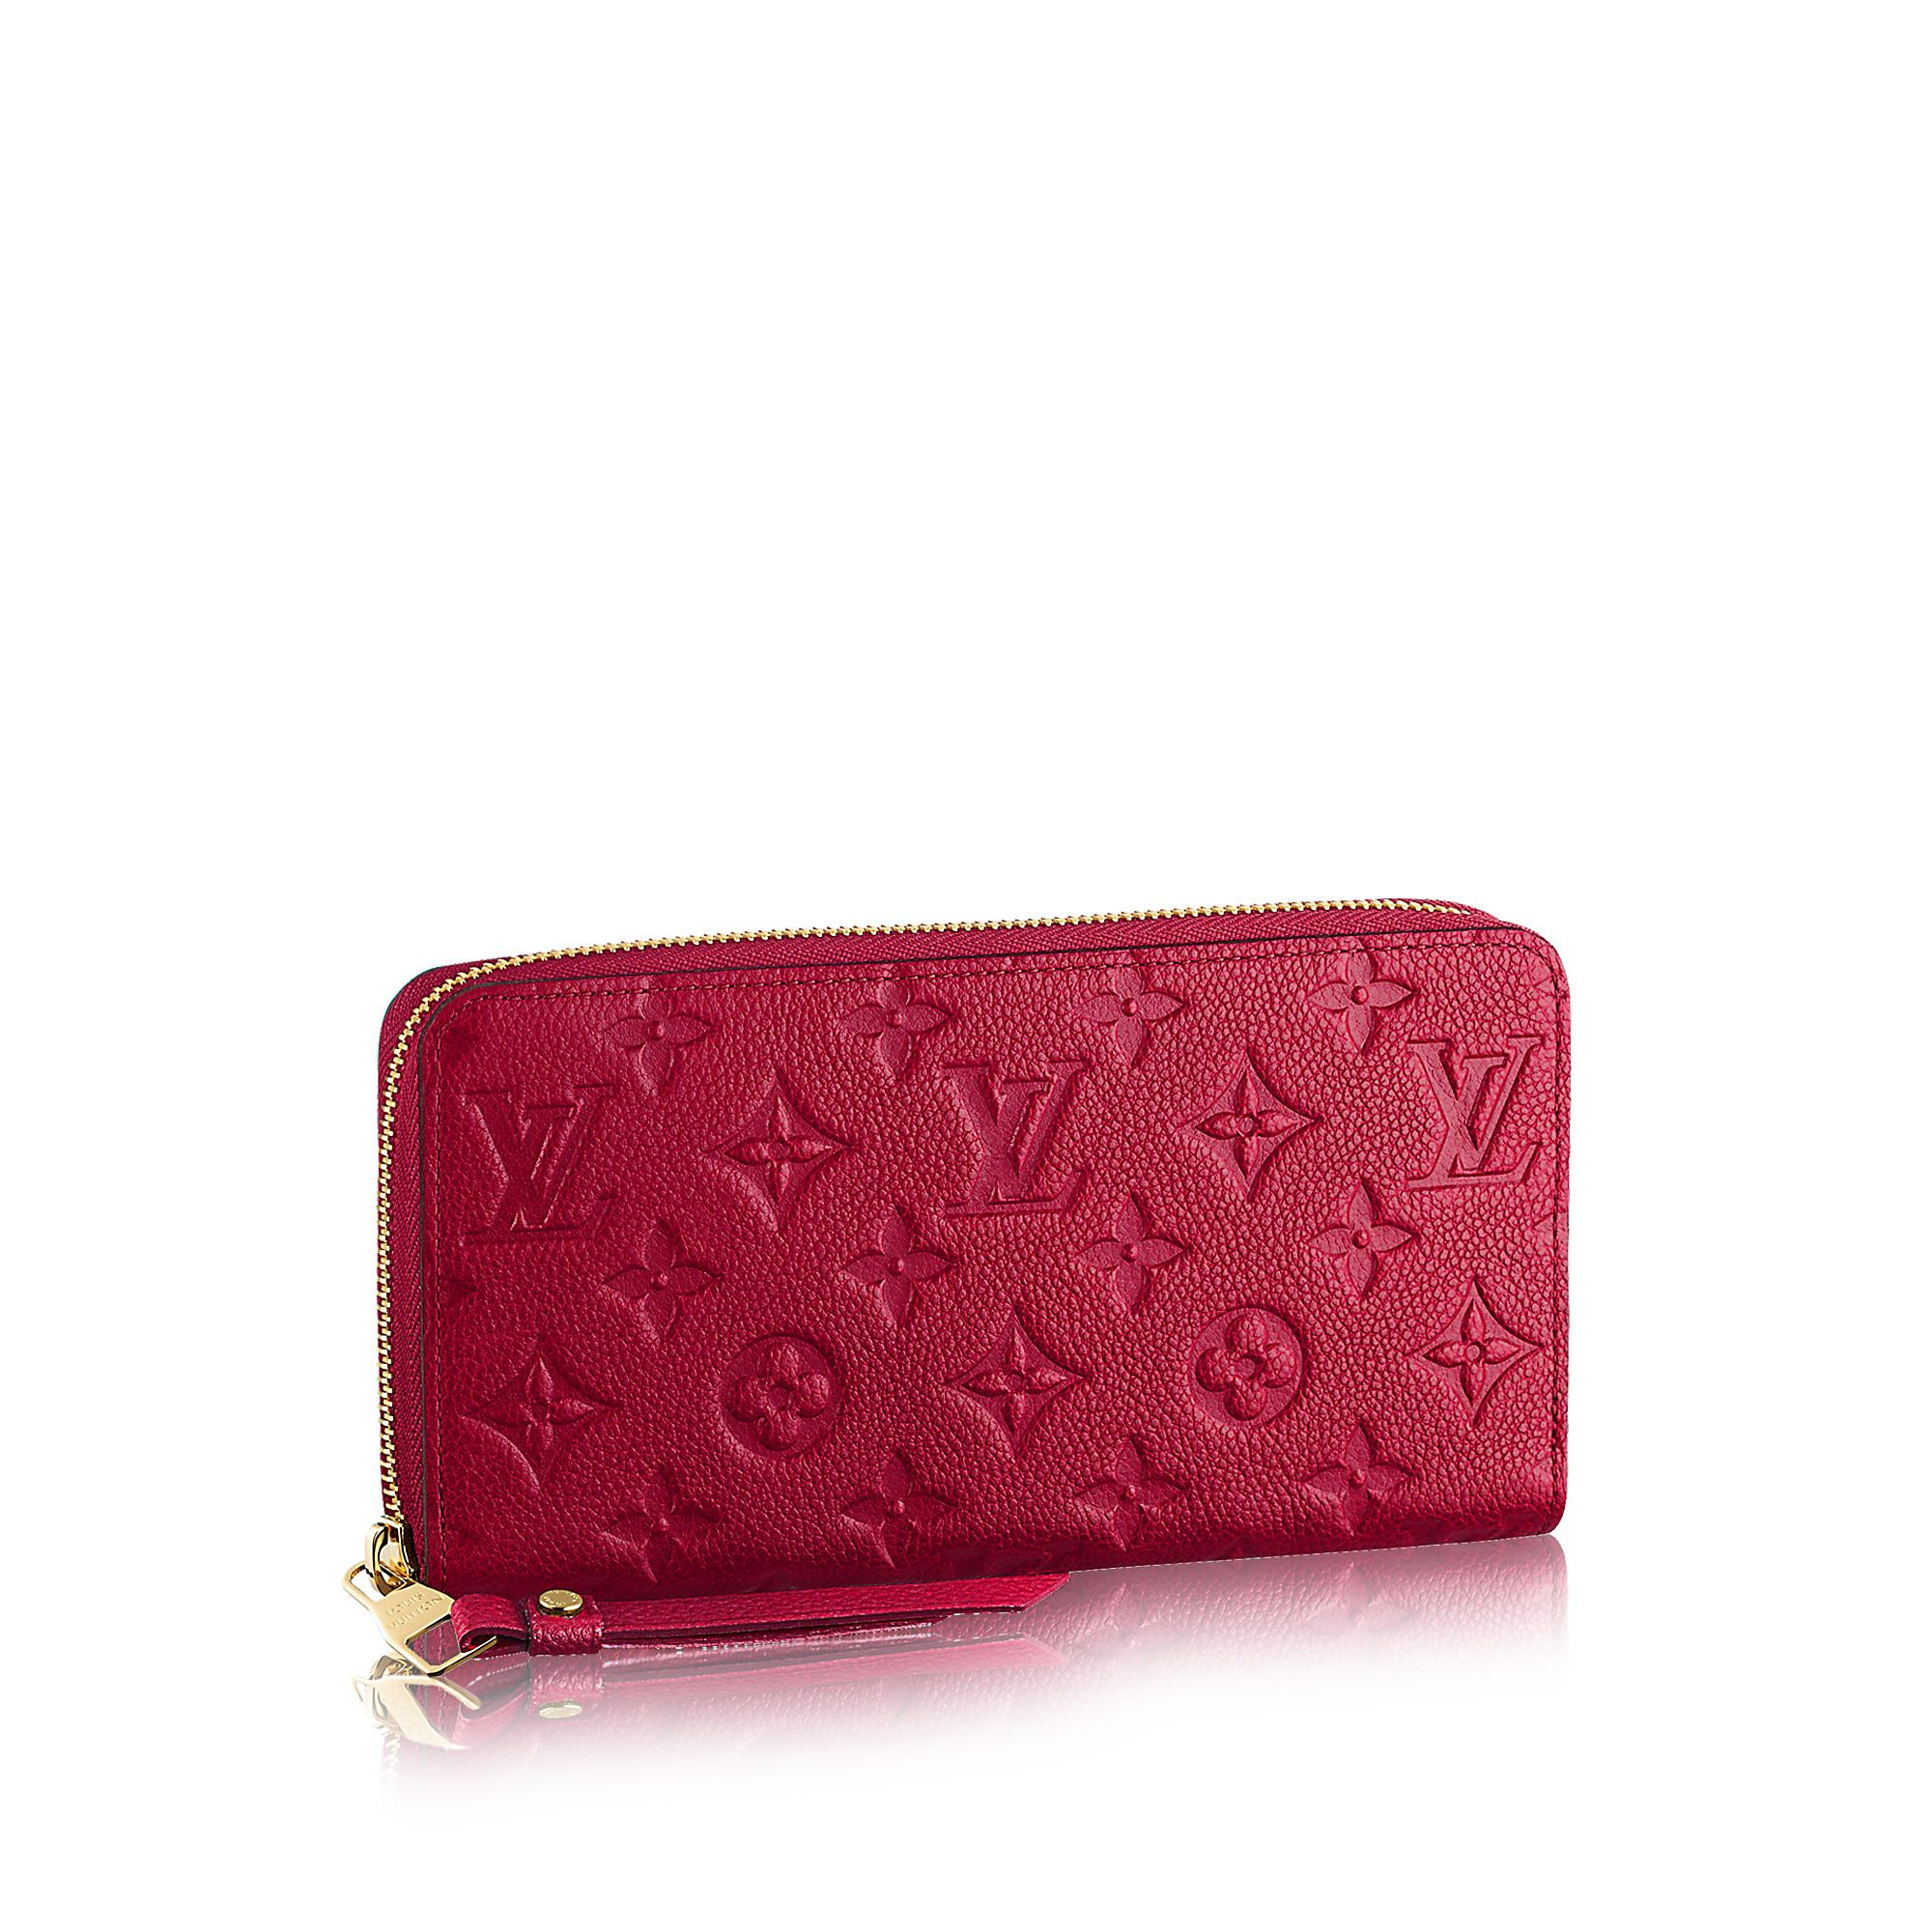 Discover Louis Vuitton Zippy Wallet via Louis Vuitton $1,050